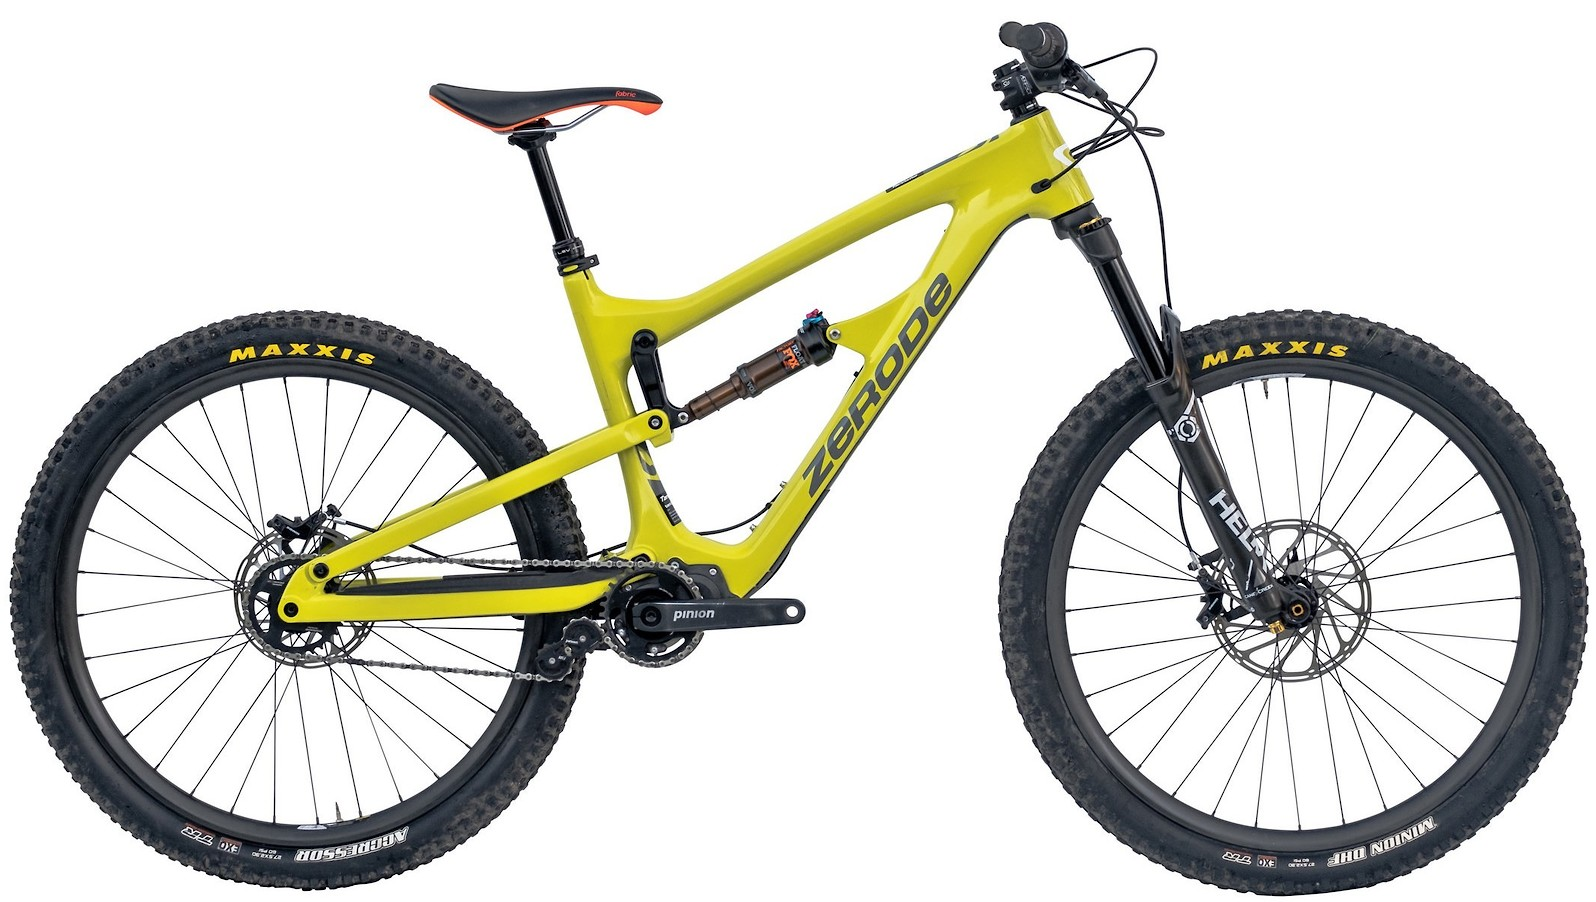 2020 Zerode Taniwha Trail Electric Grellow (Image does not accurately represent build specs)